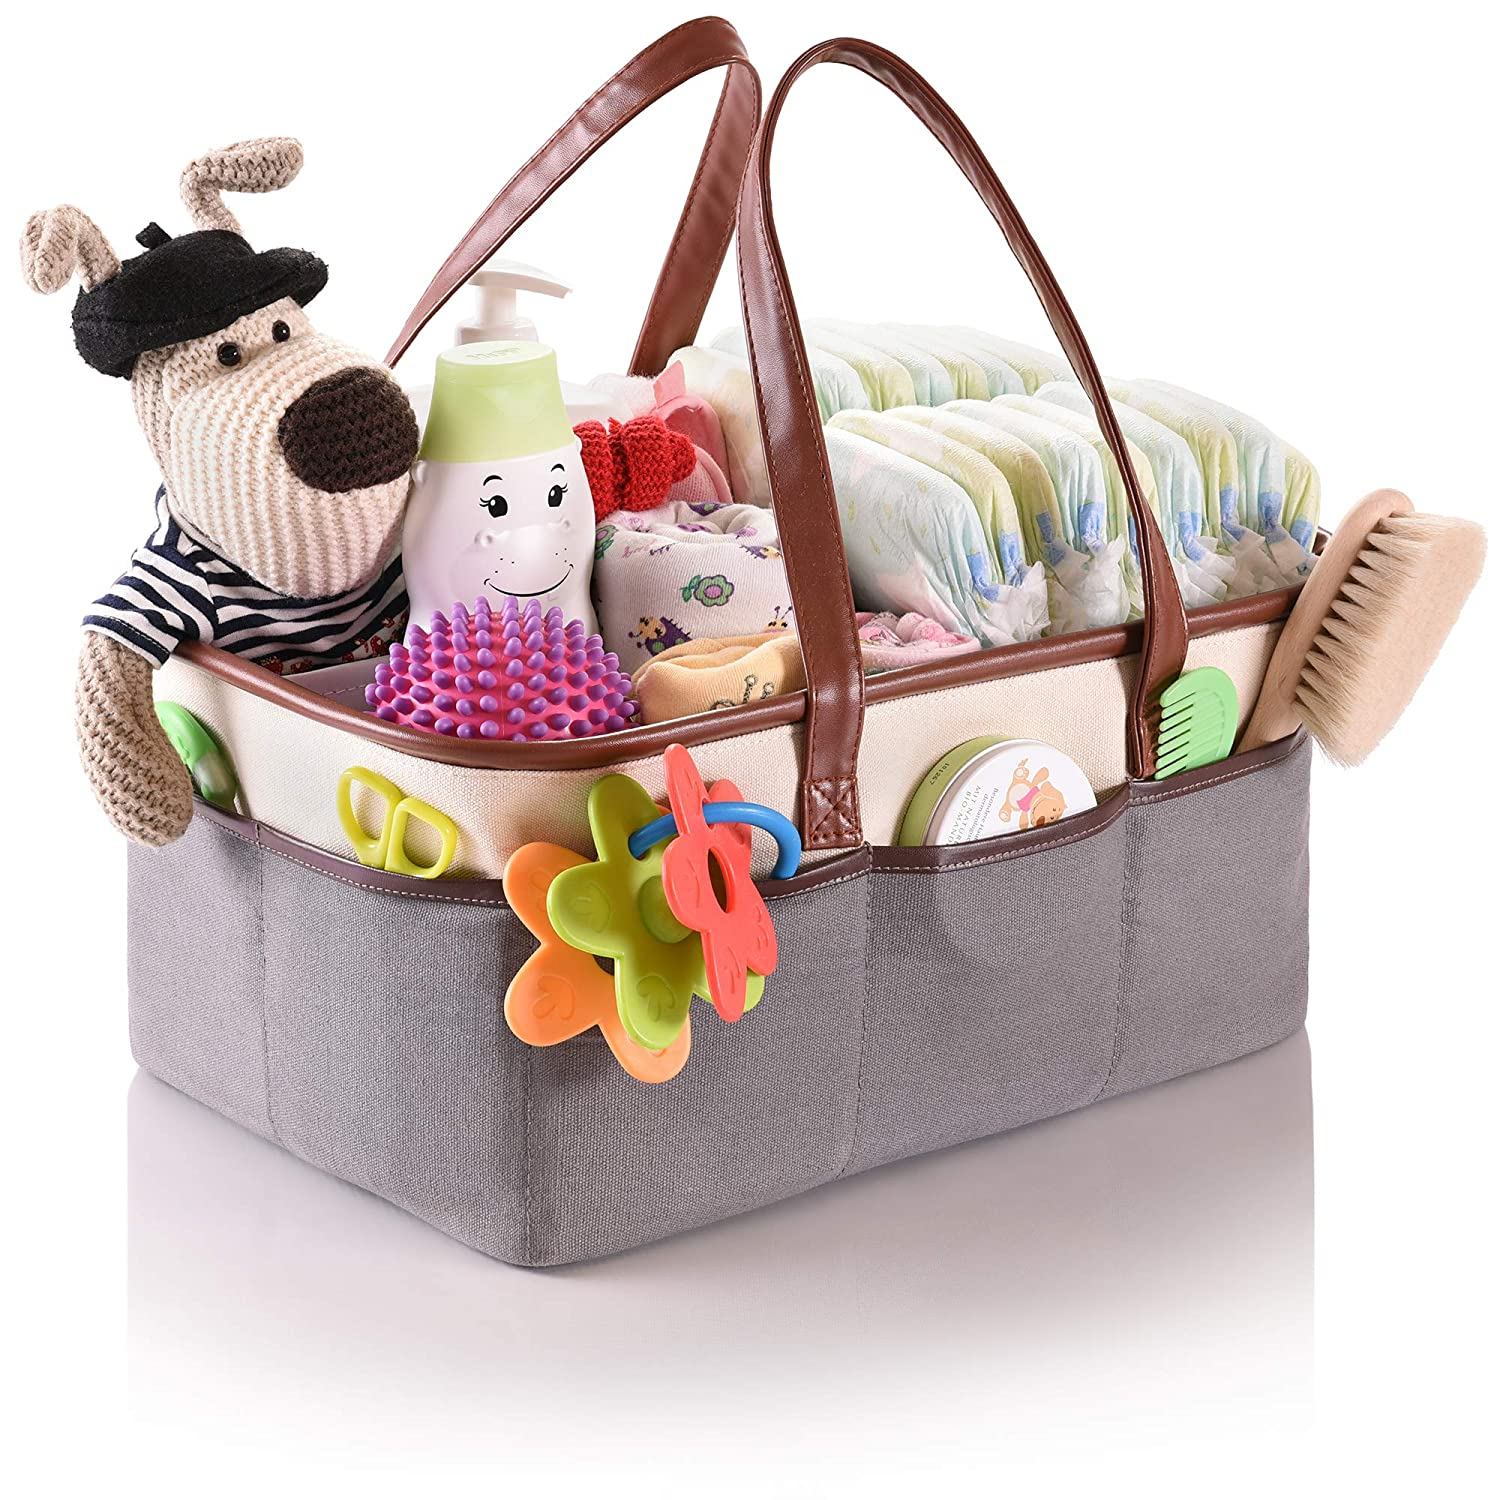 Baby Diaper Caddy Organizer by Oranzer - Your Neatly Organized Nursery Storage Basket for Changing Table, Car, Outdoors - Large Portable Diaper, Wipes Holder - Girl Boy Gift for Newborn Registry Orenzer